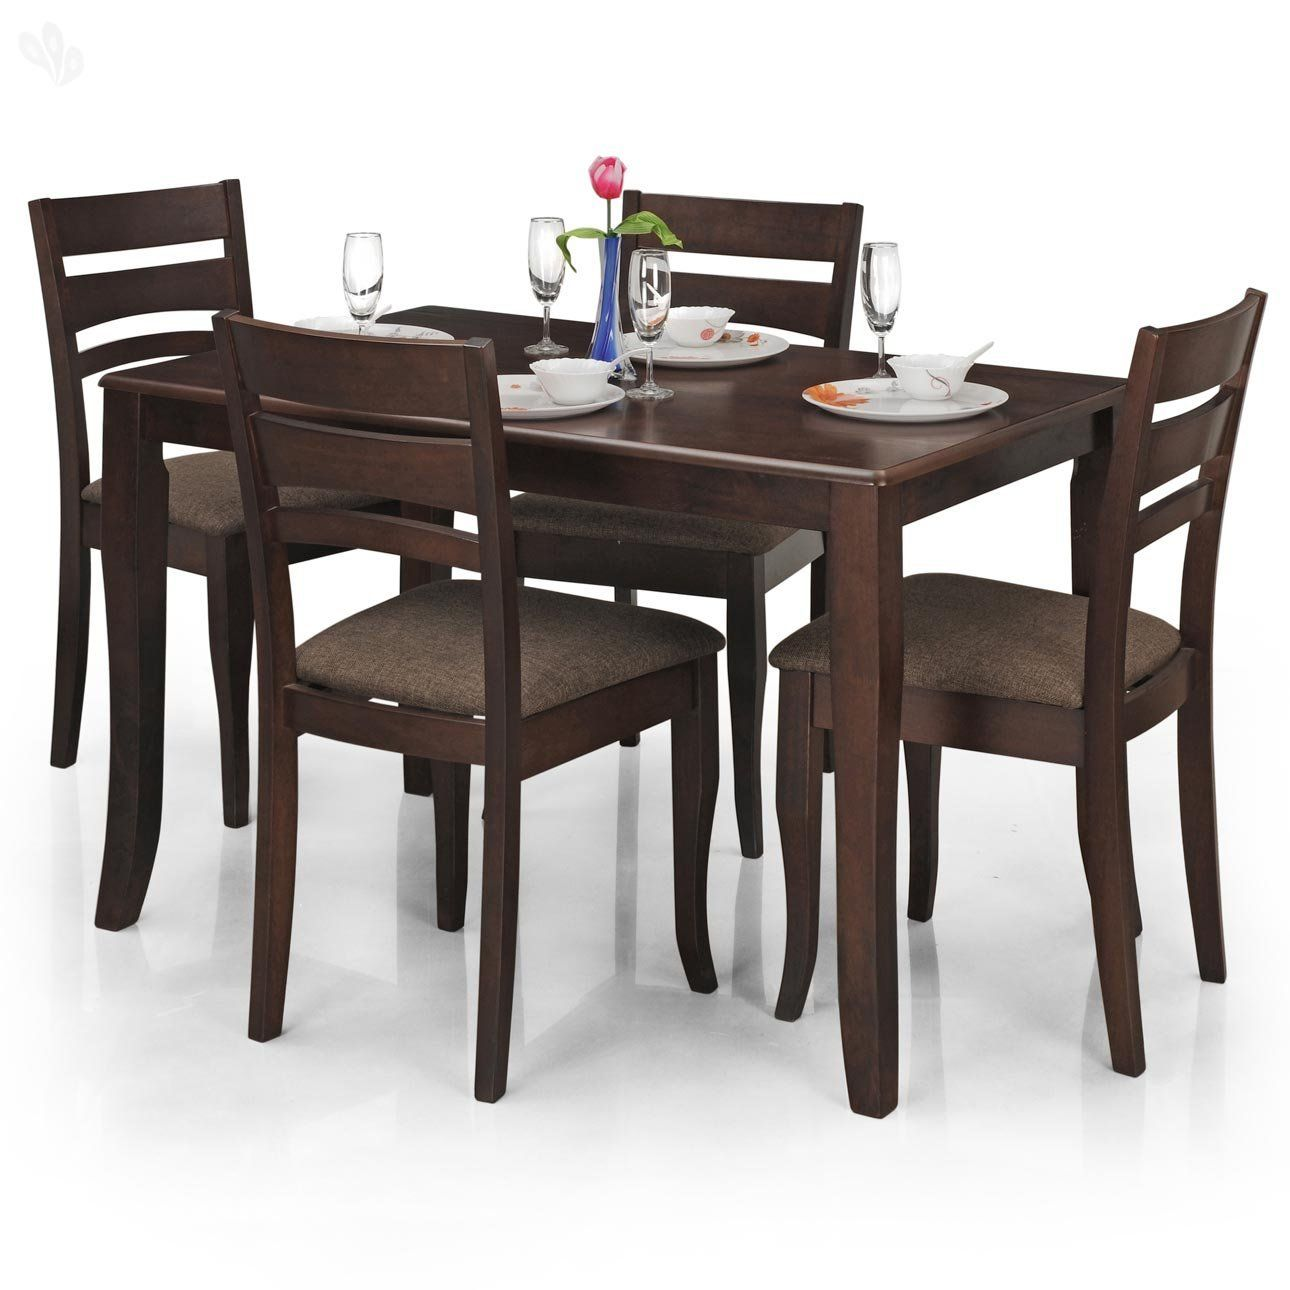 Buy Dining Tables New in raleigh kitchen cabinets Home Decorating